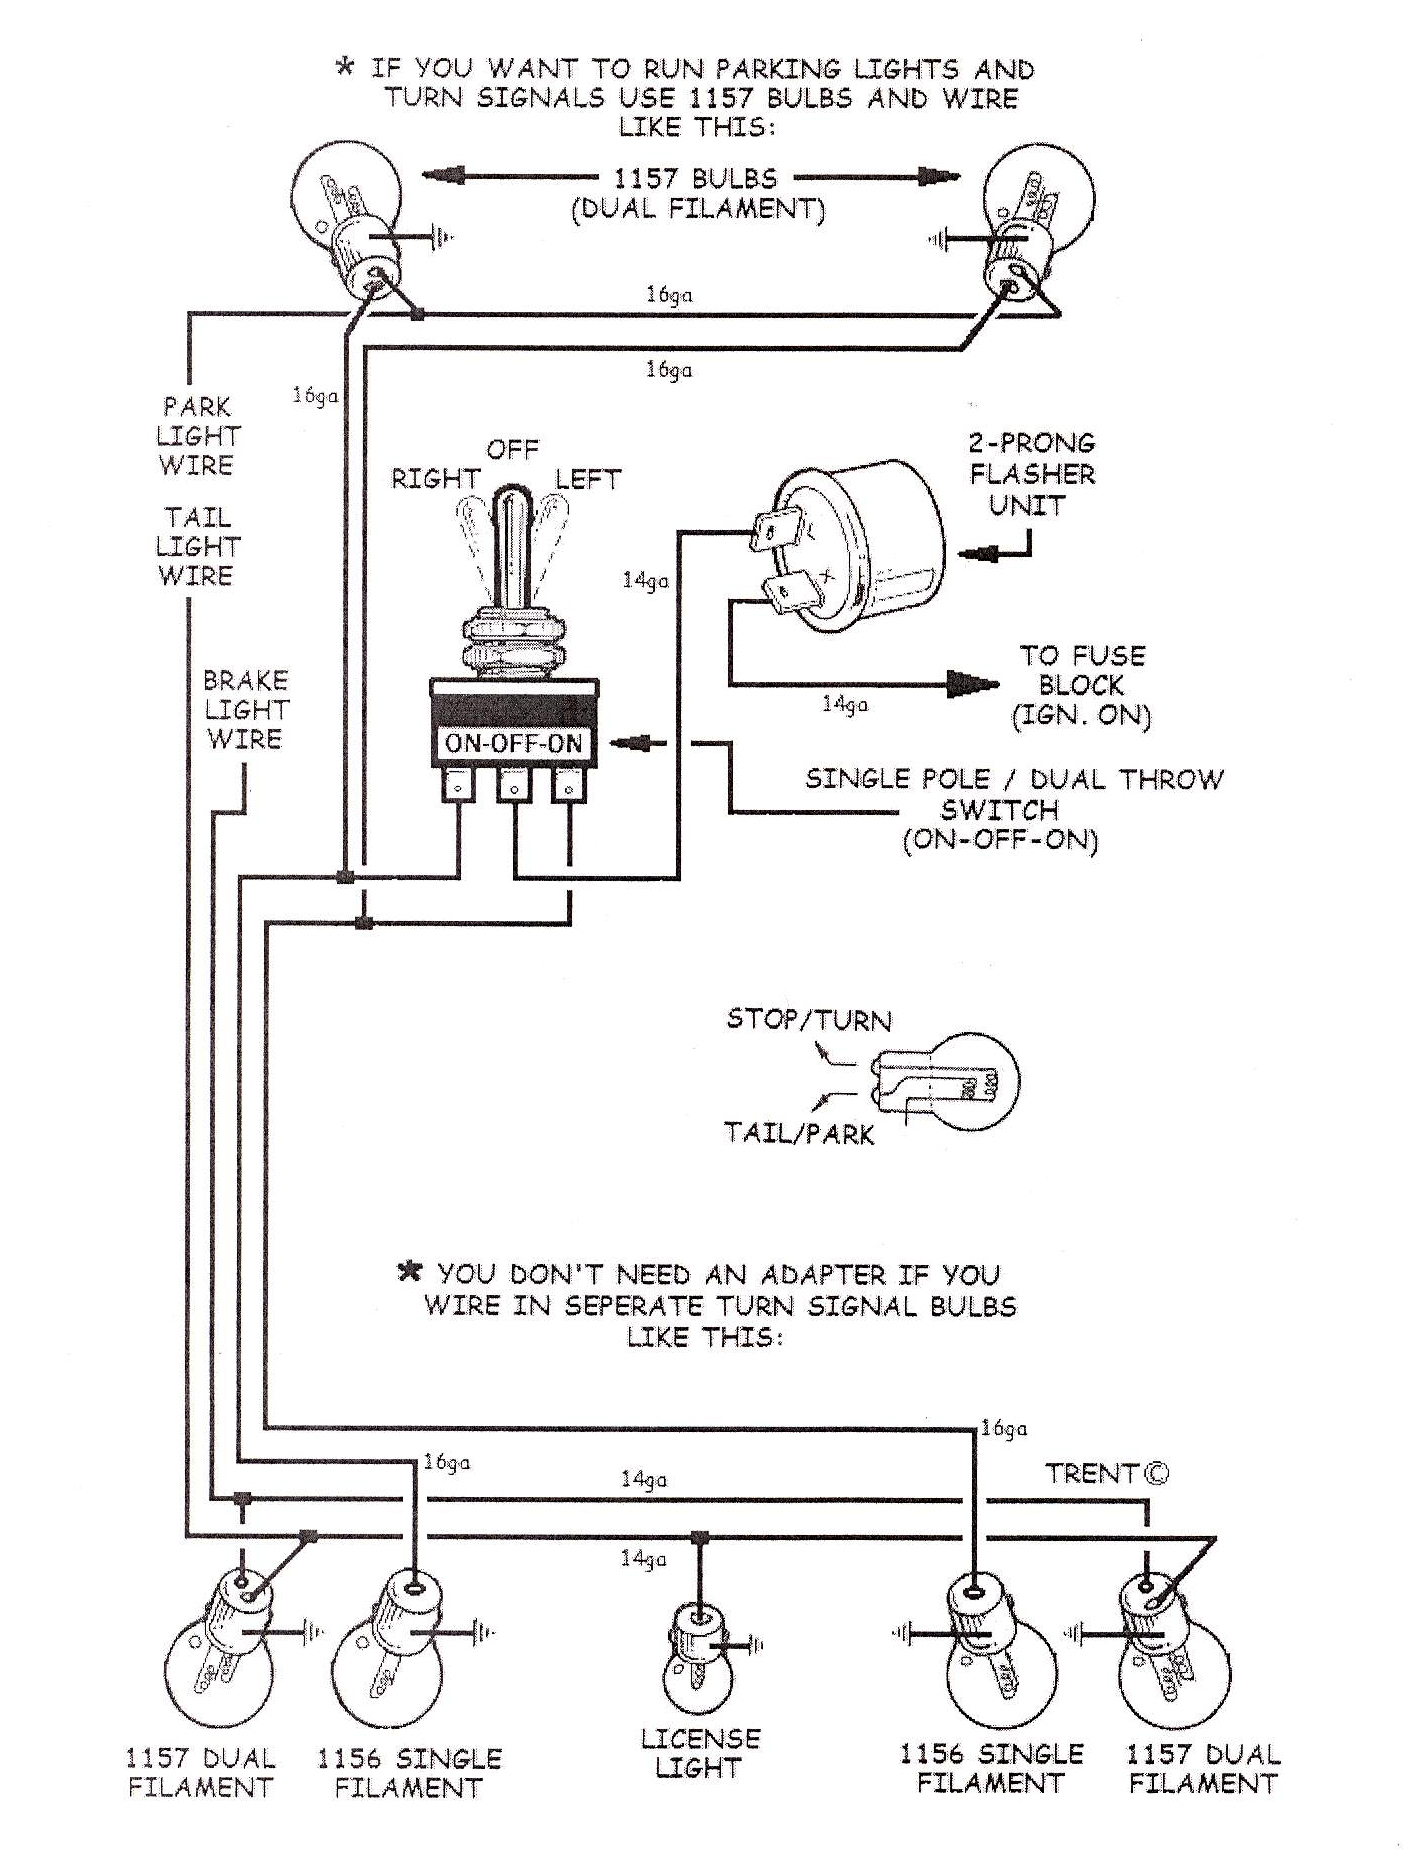 turnsignalwiringdiagram tech tips rpc steering column wiring diagram at reclaimingppi.co